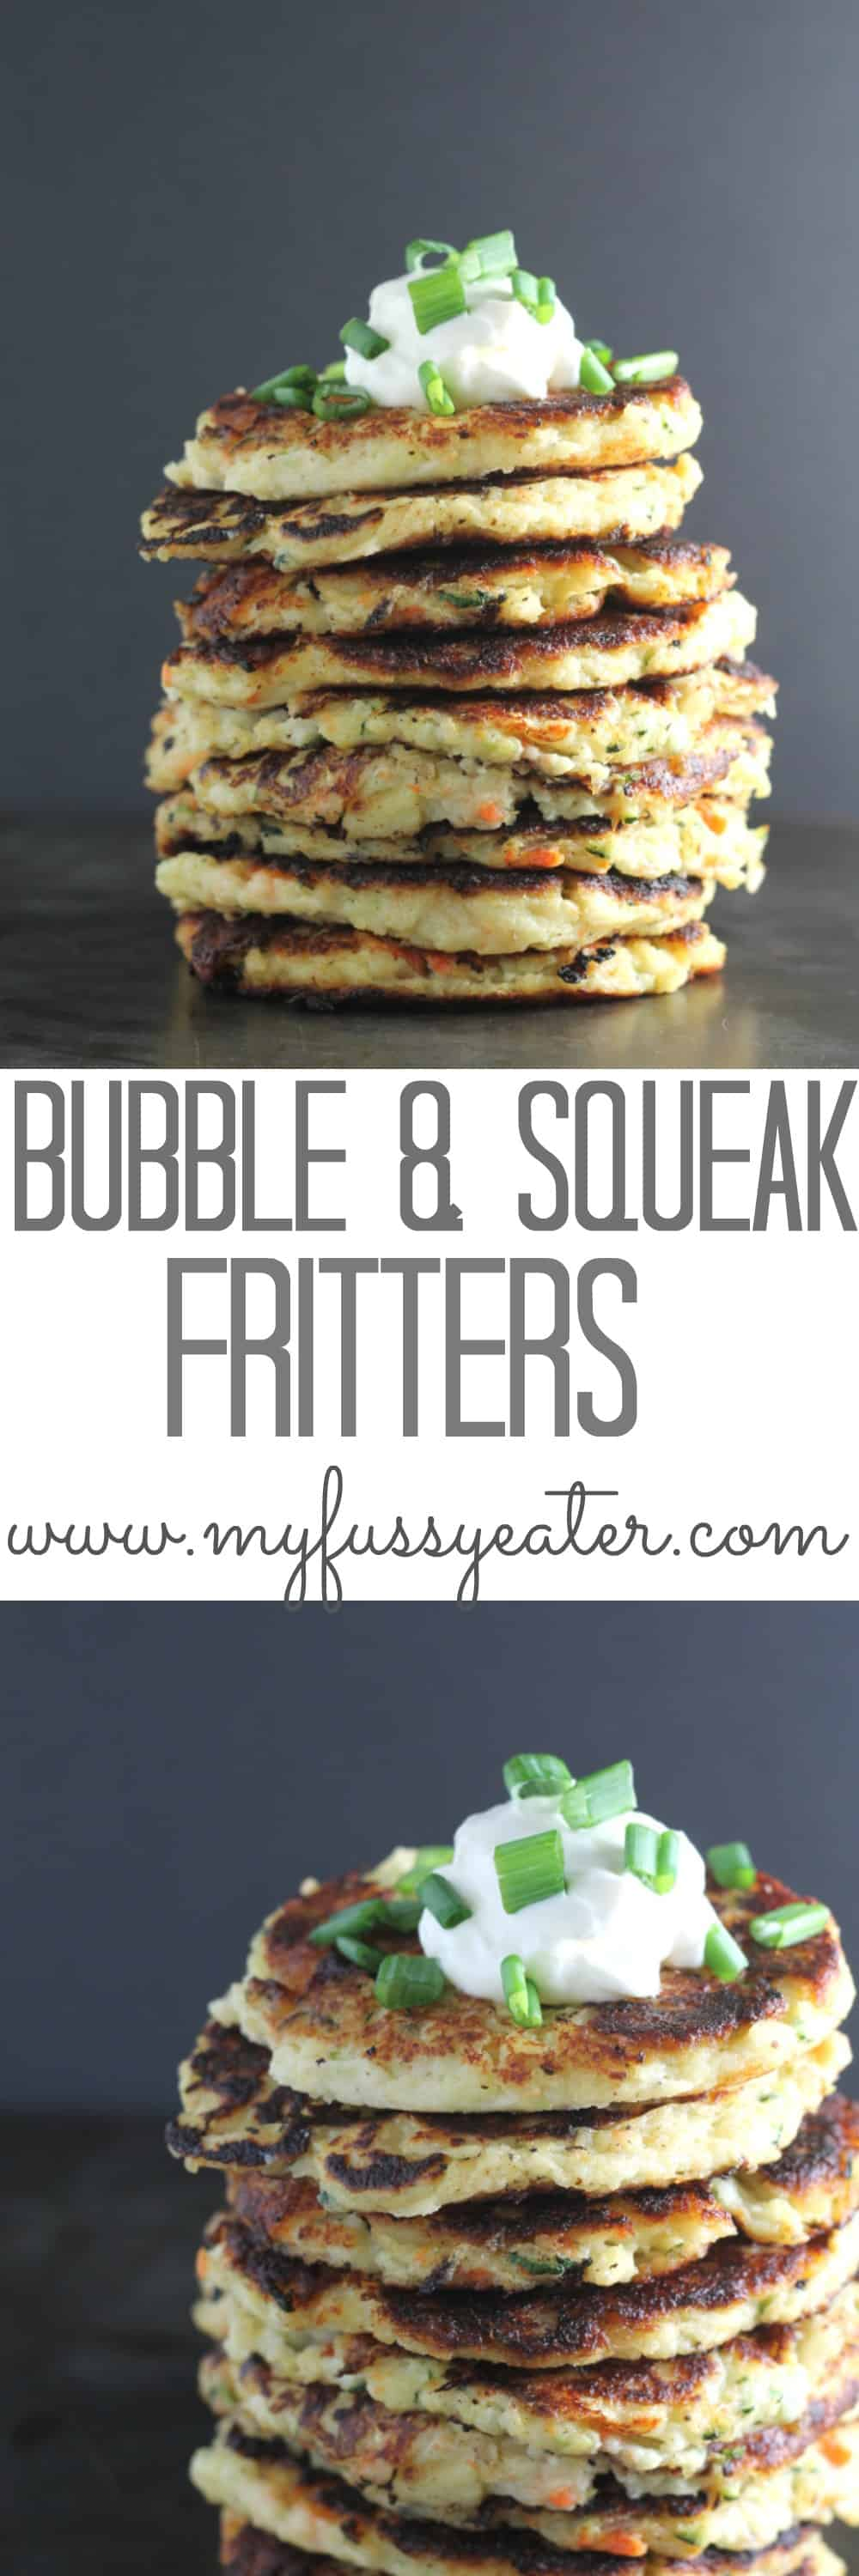 bubble & squeak fritters pinterest pin